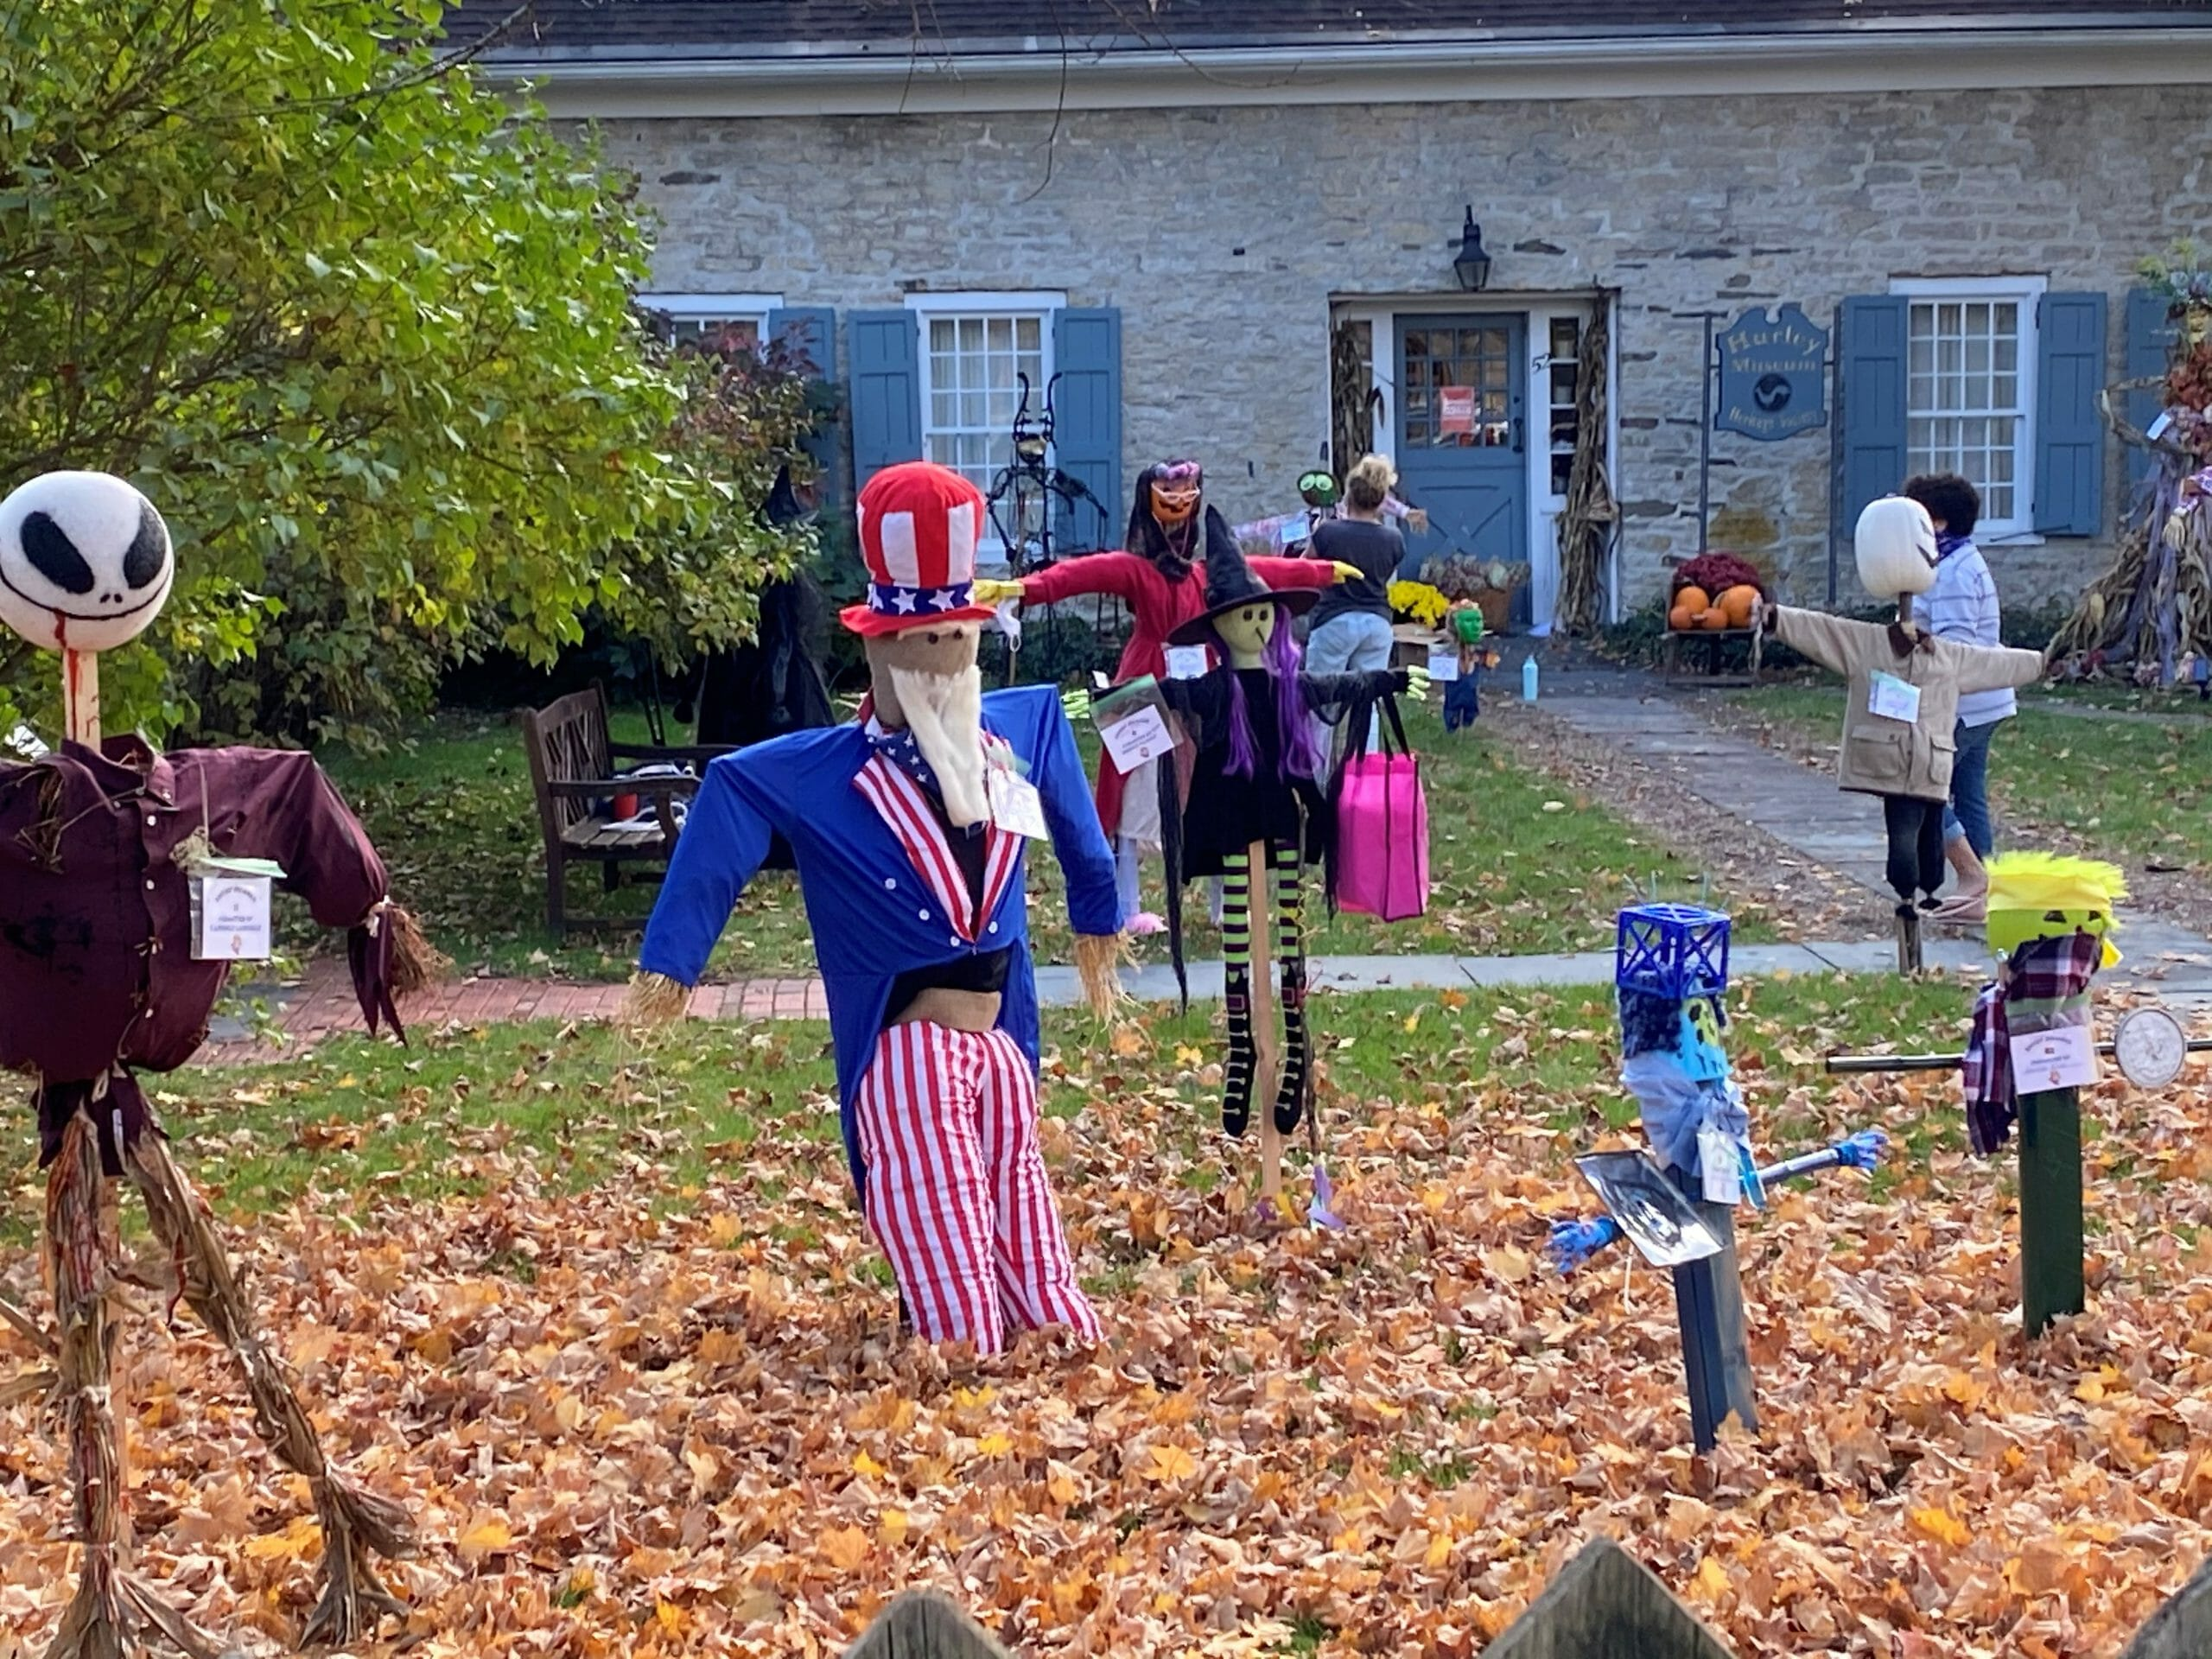 Scarecrows on the lawn at the Hurley Heritage Society